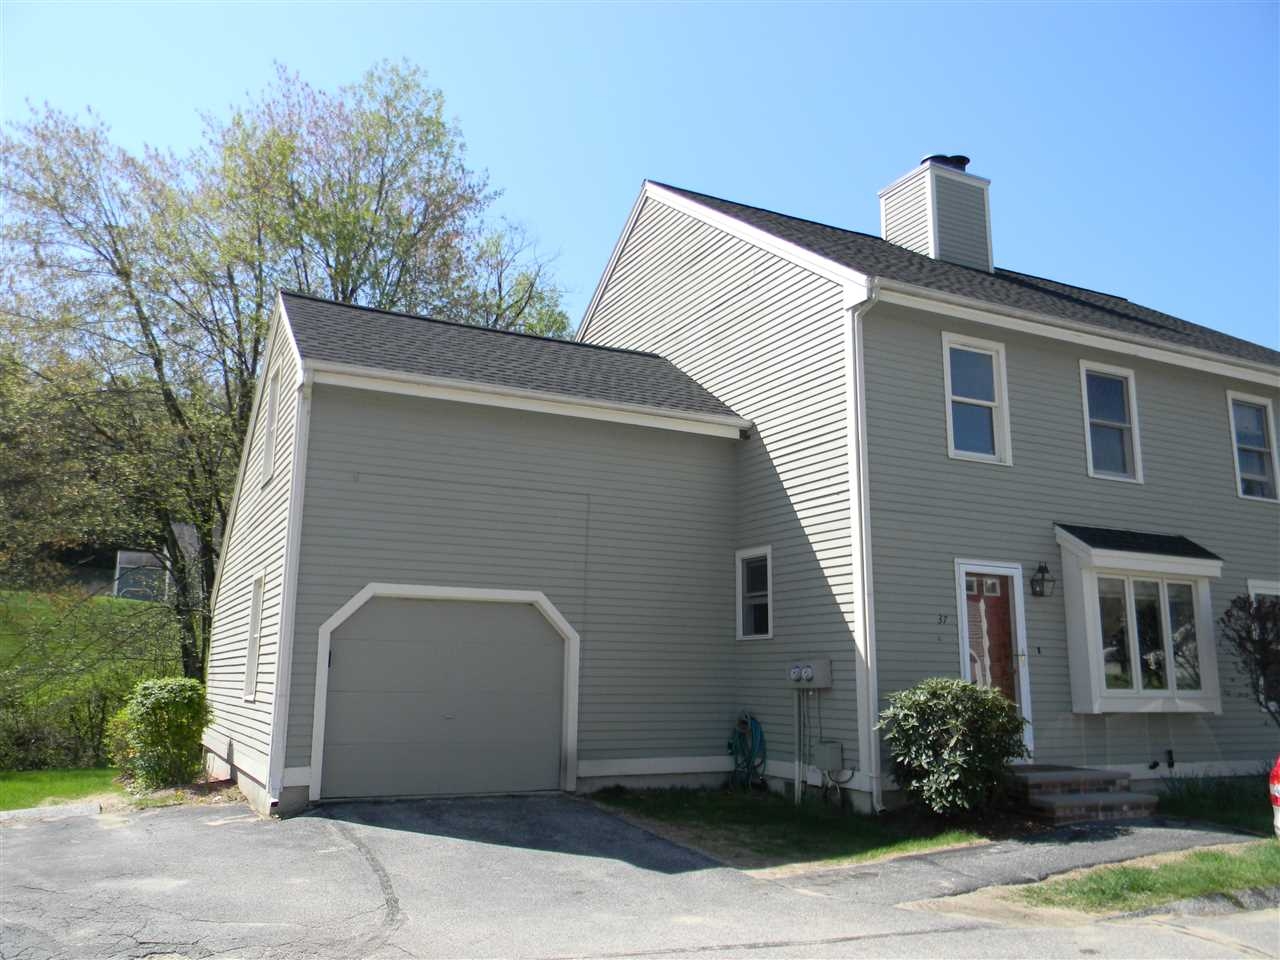 image of Milford NH Condo | sq.ft. 1805